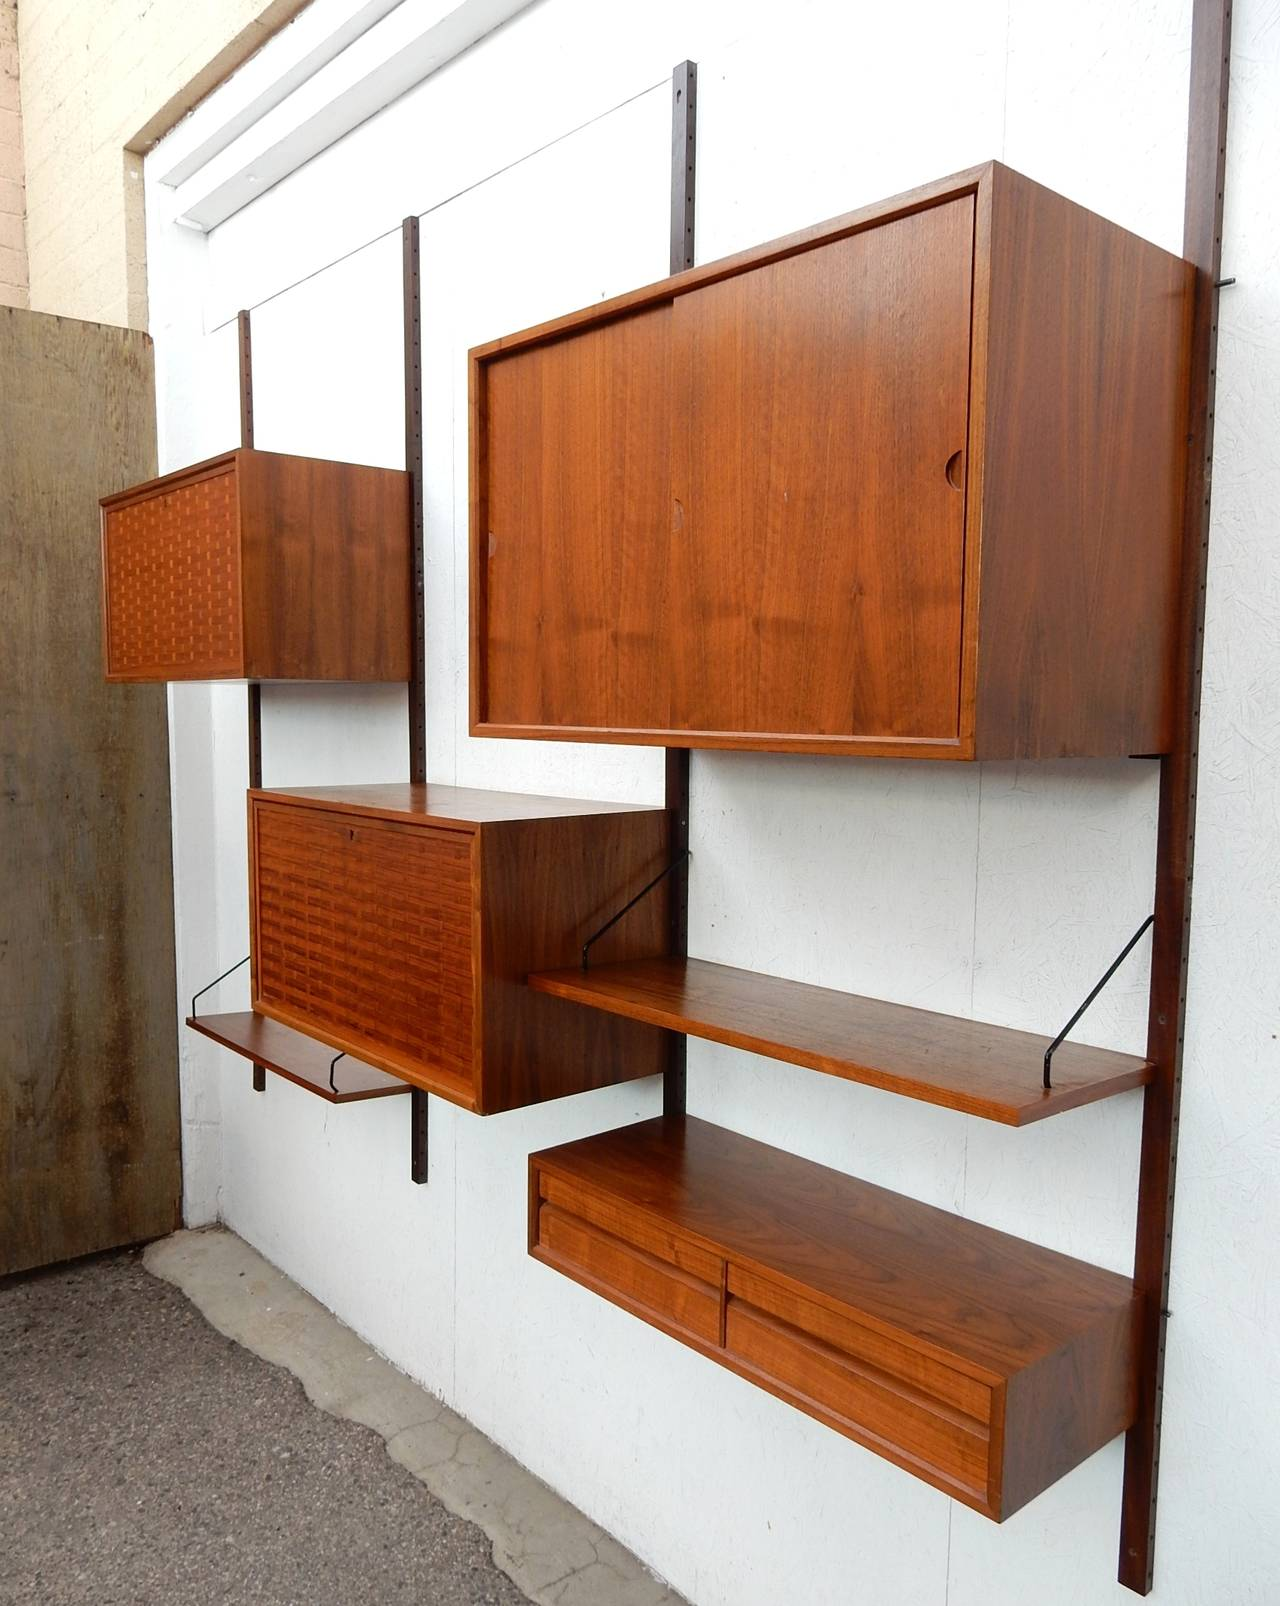 midcentury modern poul cadovius cado wall unit cabinet shelf system 2